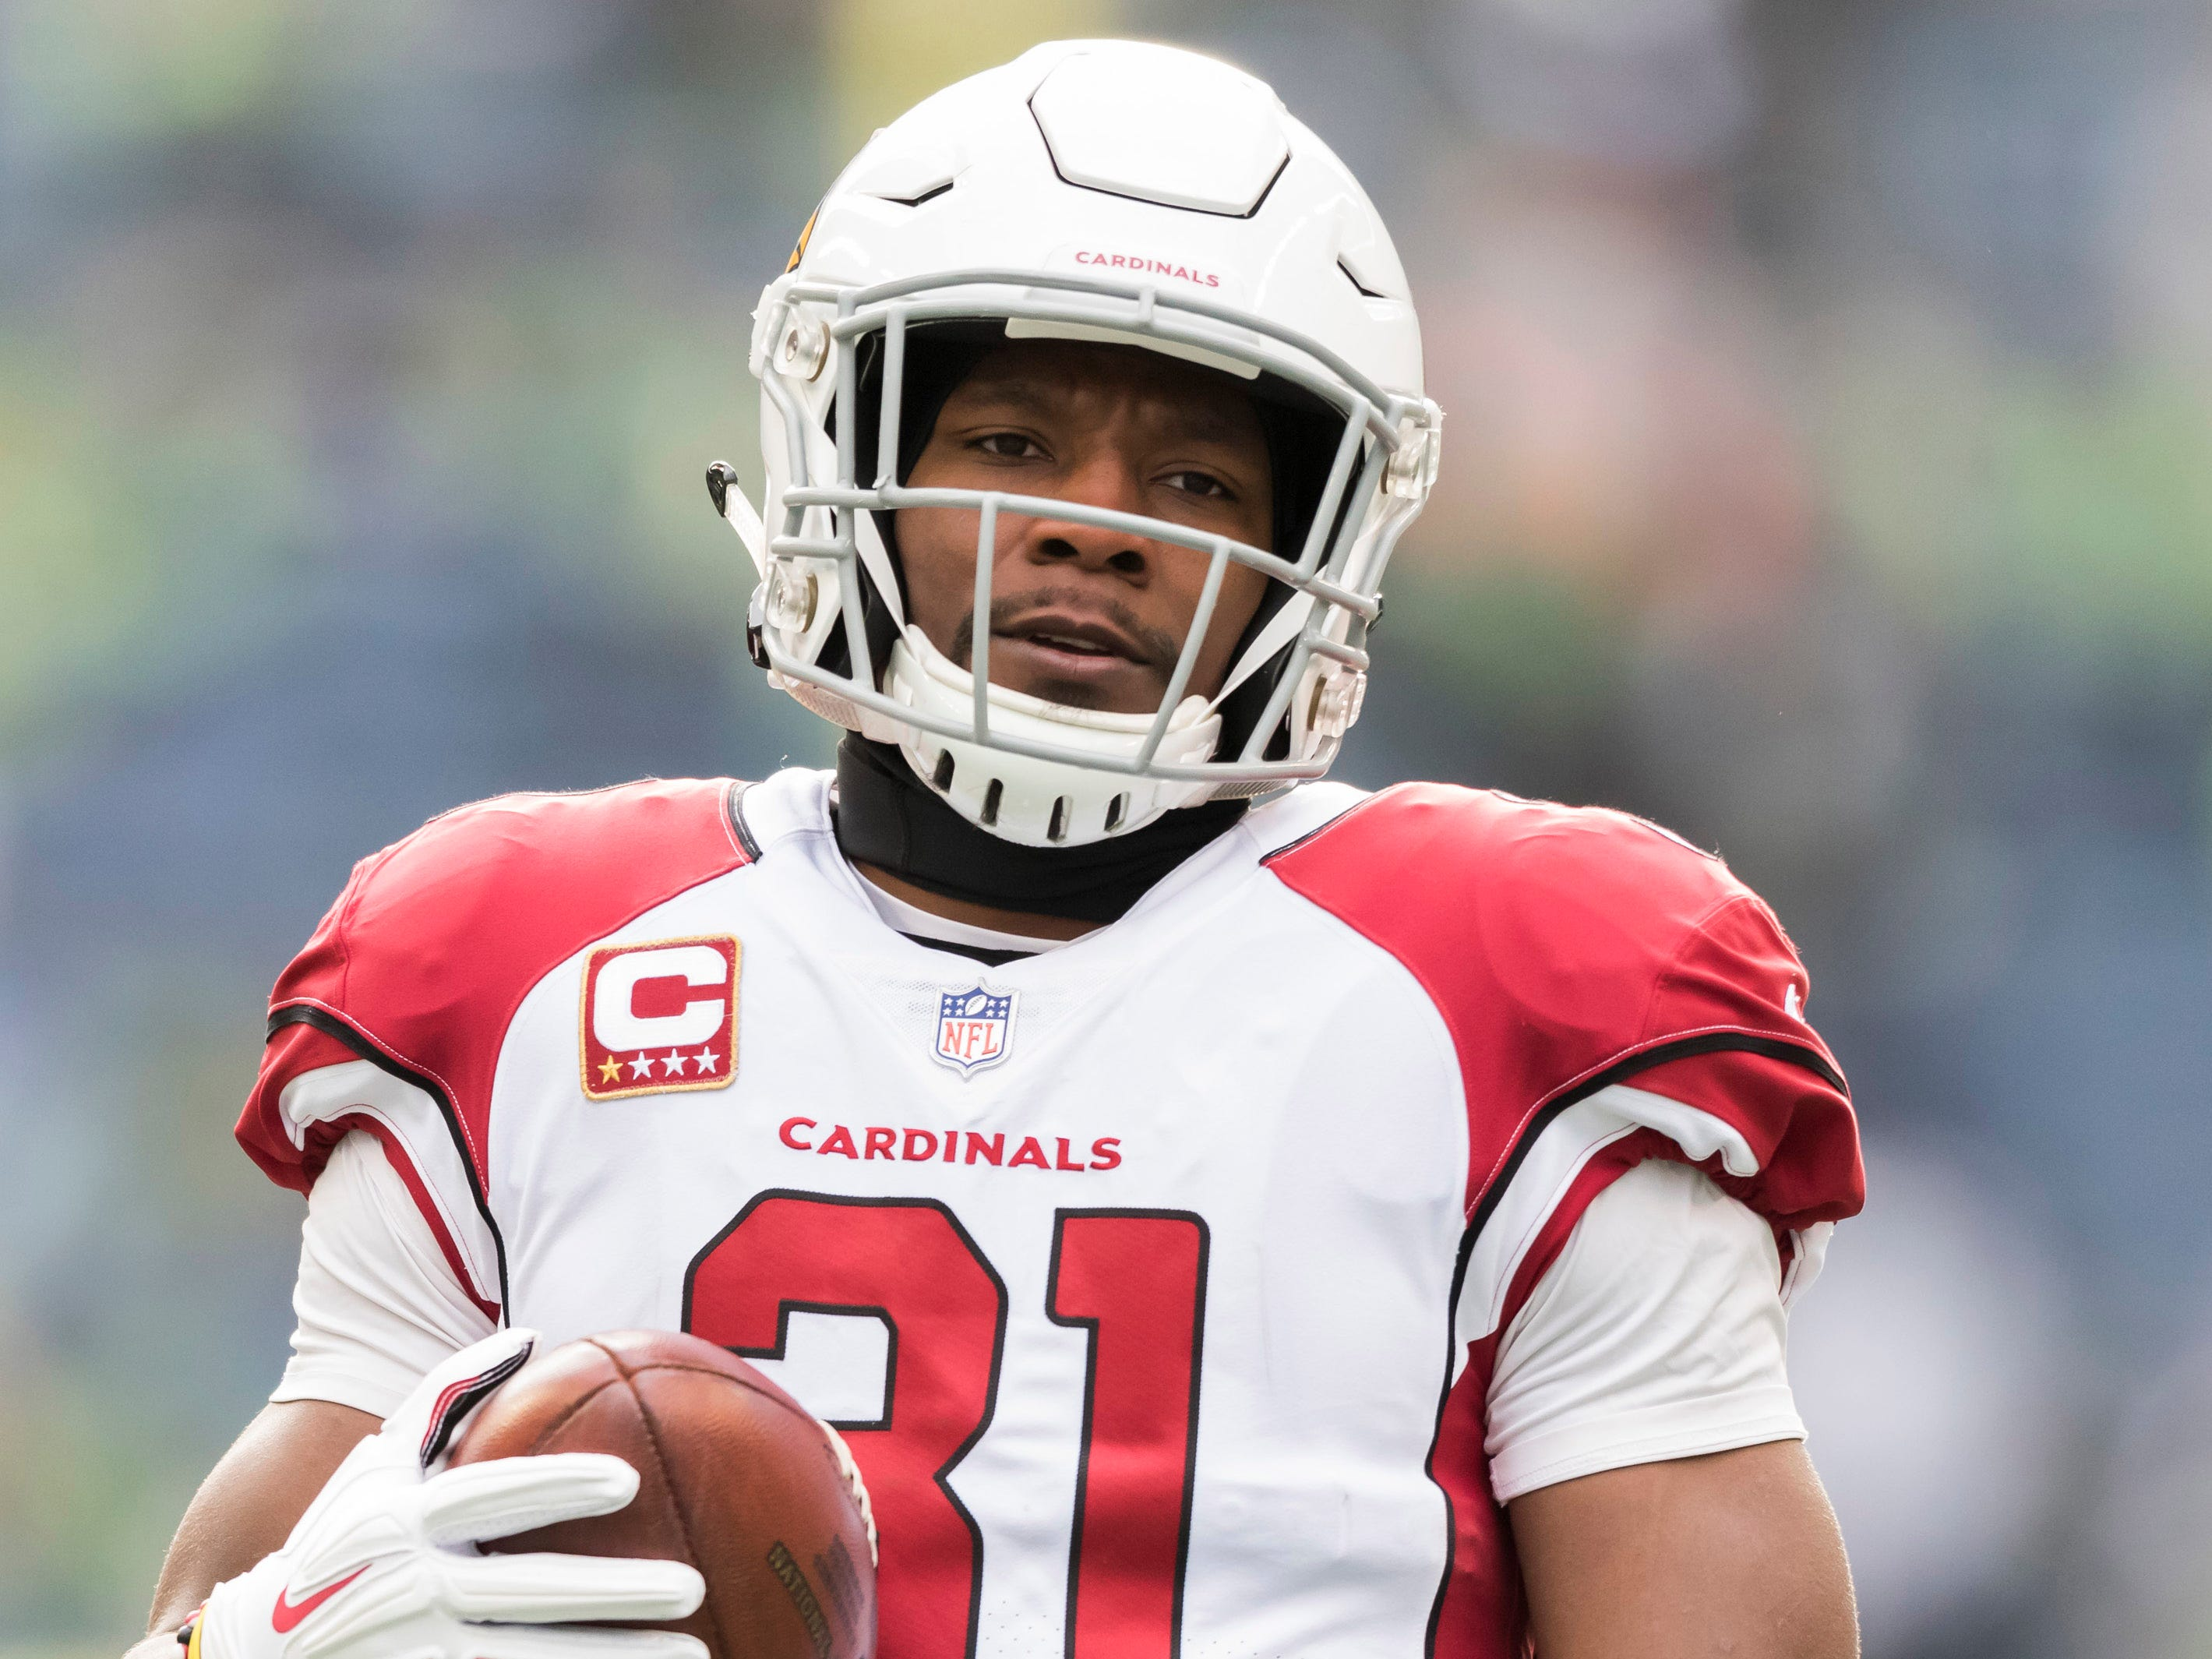 Dec 30, 2018; Seattle, WA, USA; Arizona Cardinals running back David Johnson (31) during warmups prior to the game against the Seattle Seahawks at CenturyLink Field. Mandatory Credit: Steven Bisig-USA TODAY Sports